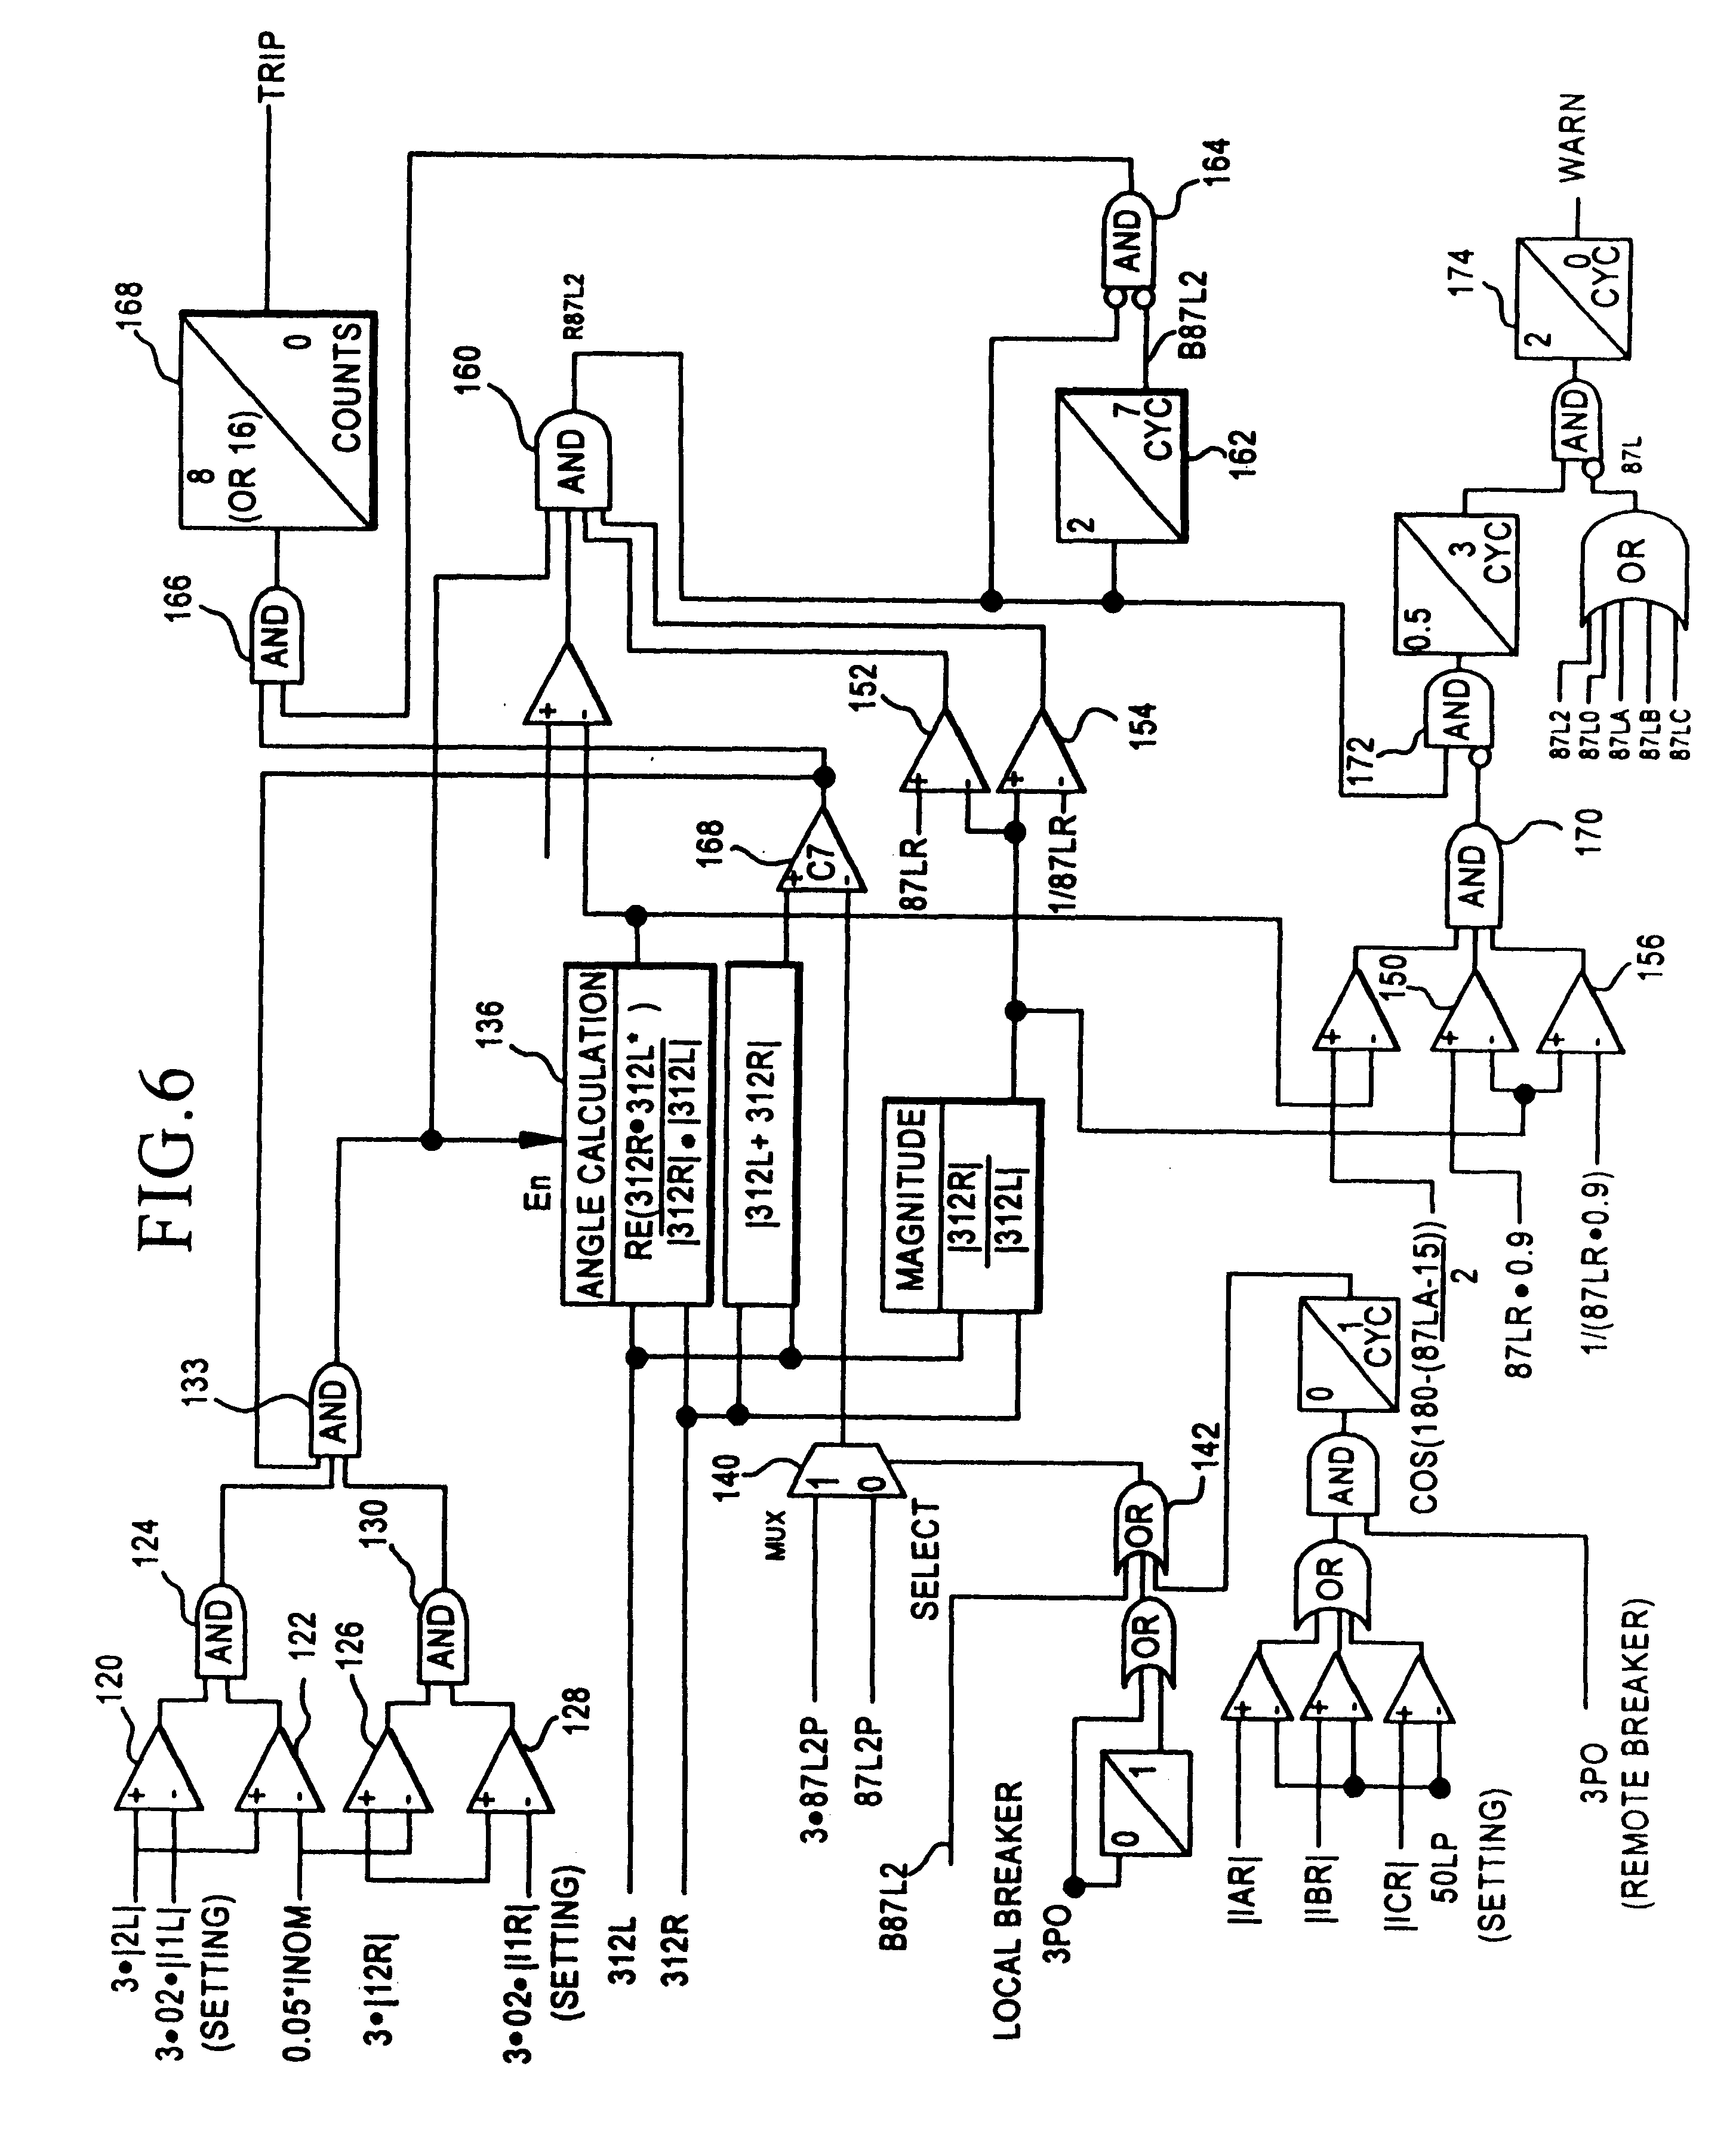 deltum jointer wiring diagram Variable Transformer Wiring Diagram small resolution of patent us6590397 line differential protection system for a power deltum wye transformer schematic